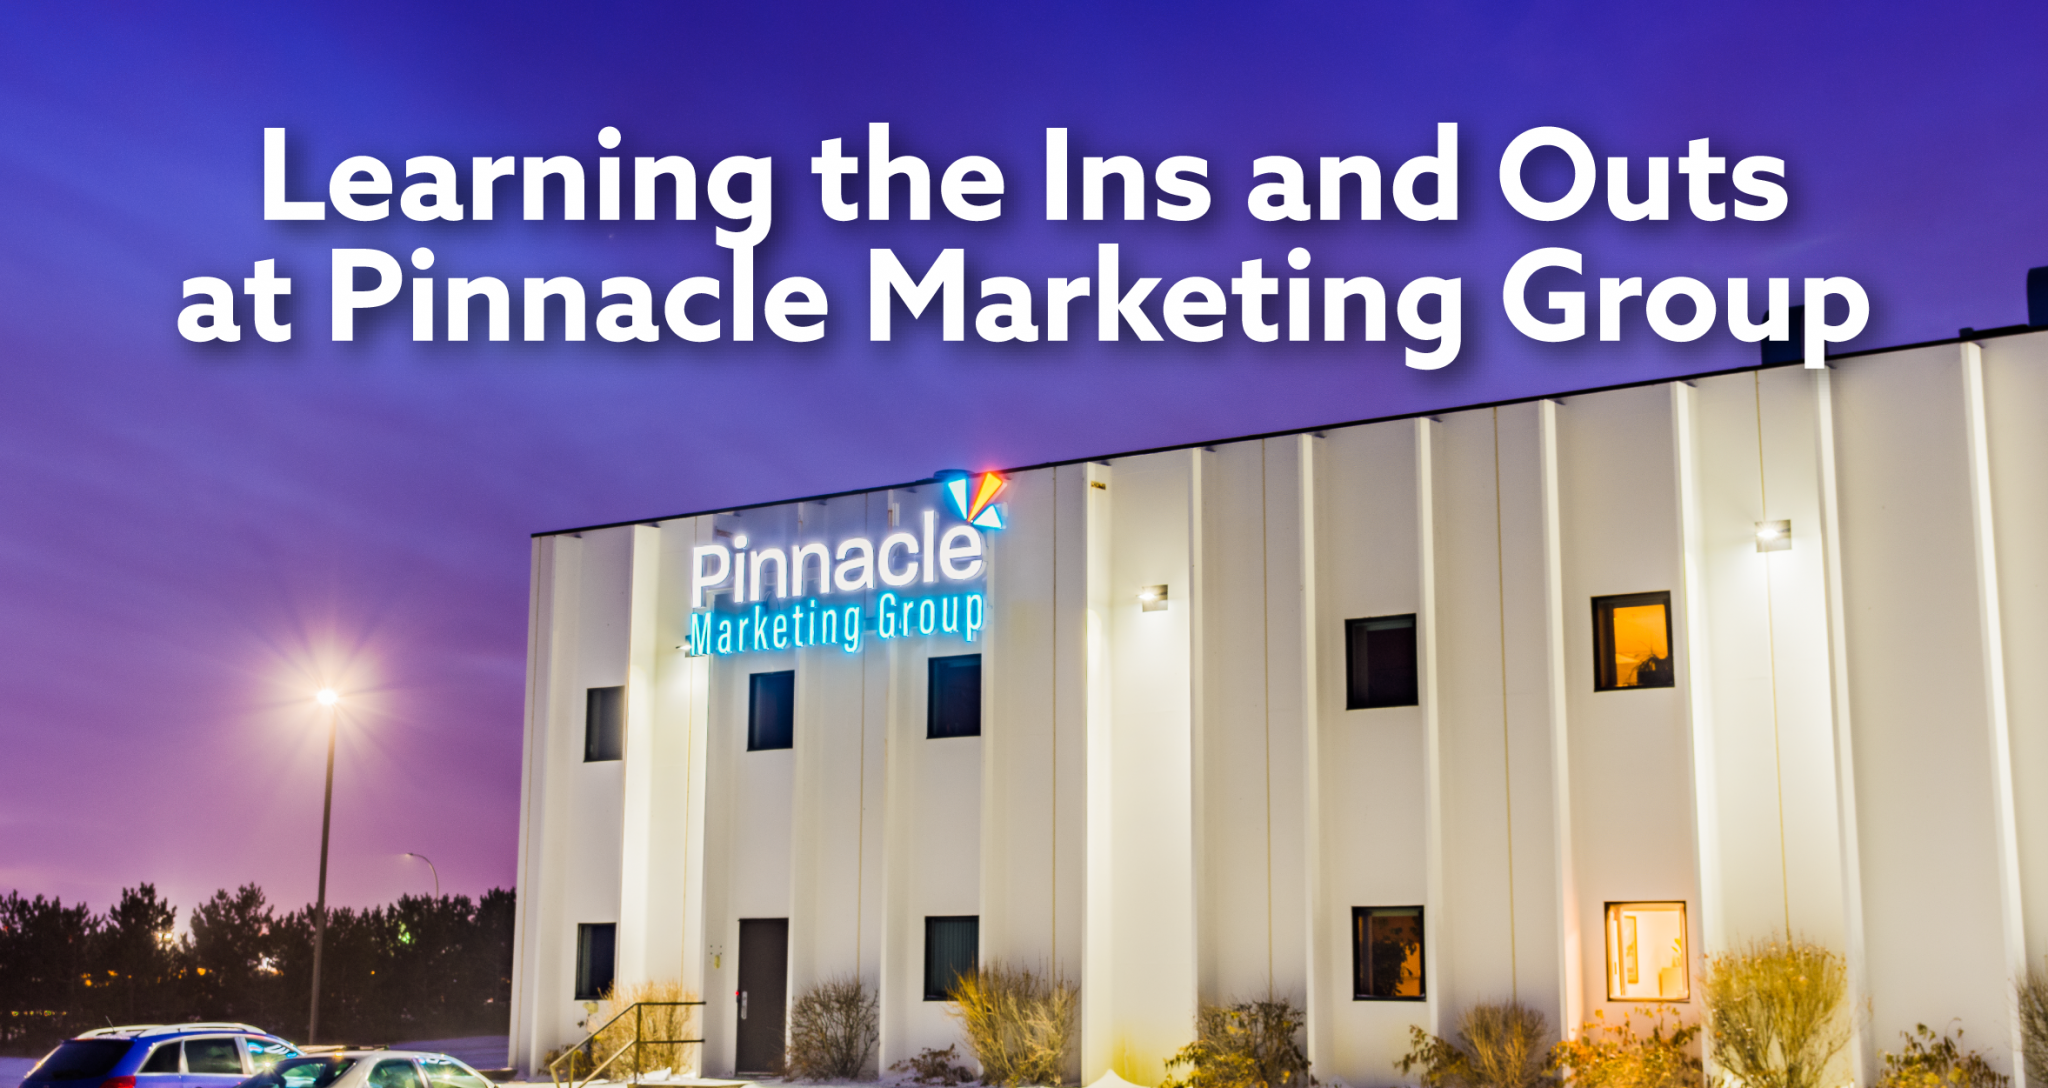 Learning the ins and outs at Pinnacle Marketing Group